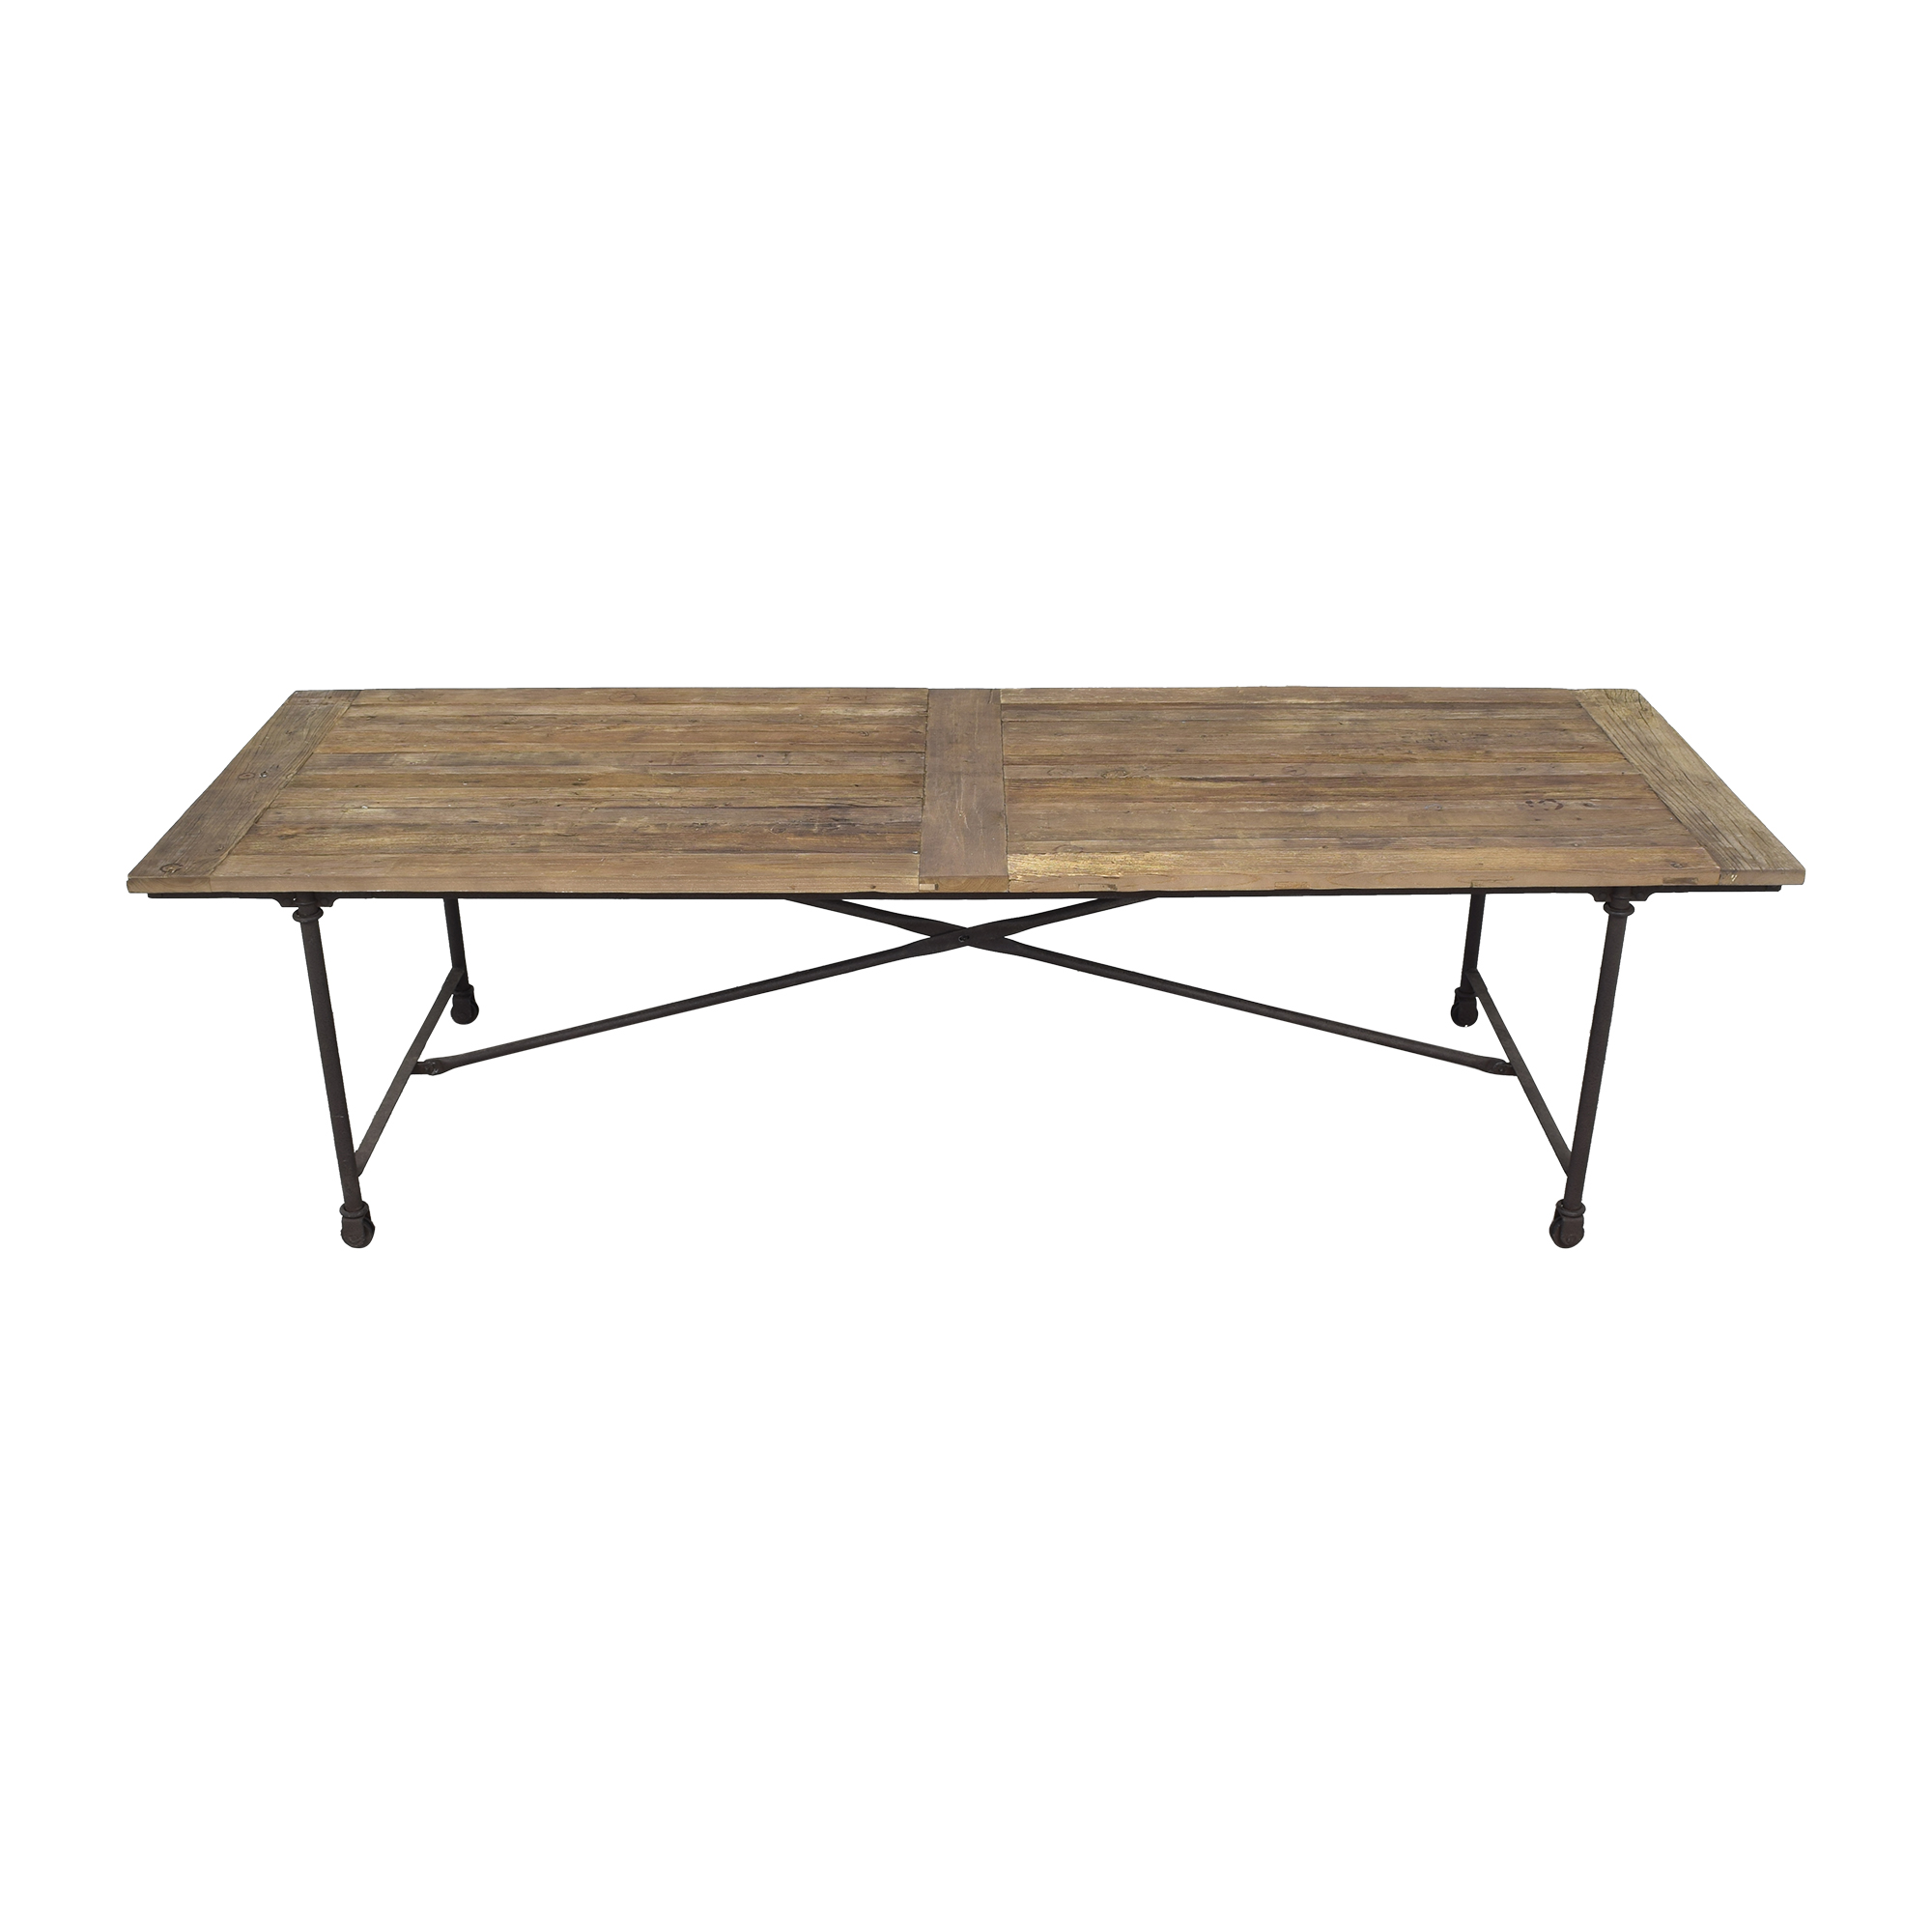 Reclaimed Wood Conference Table used